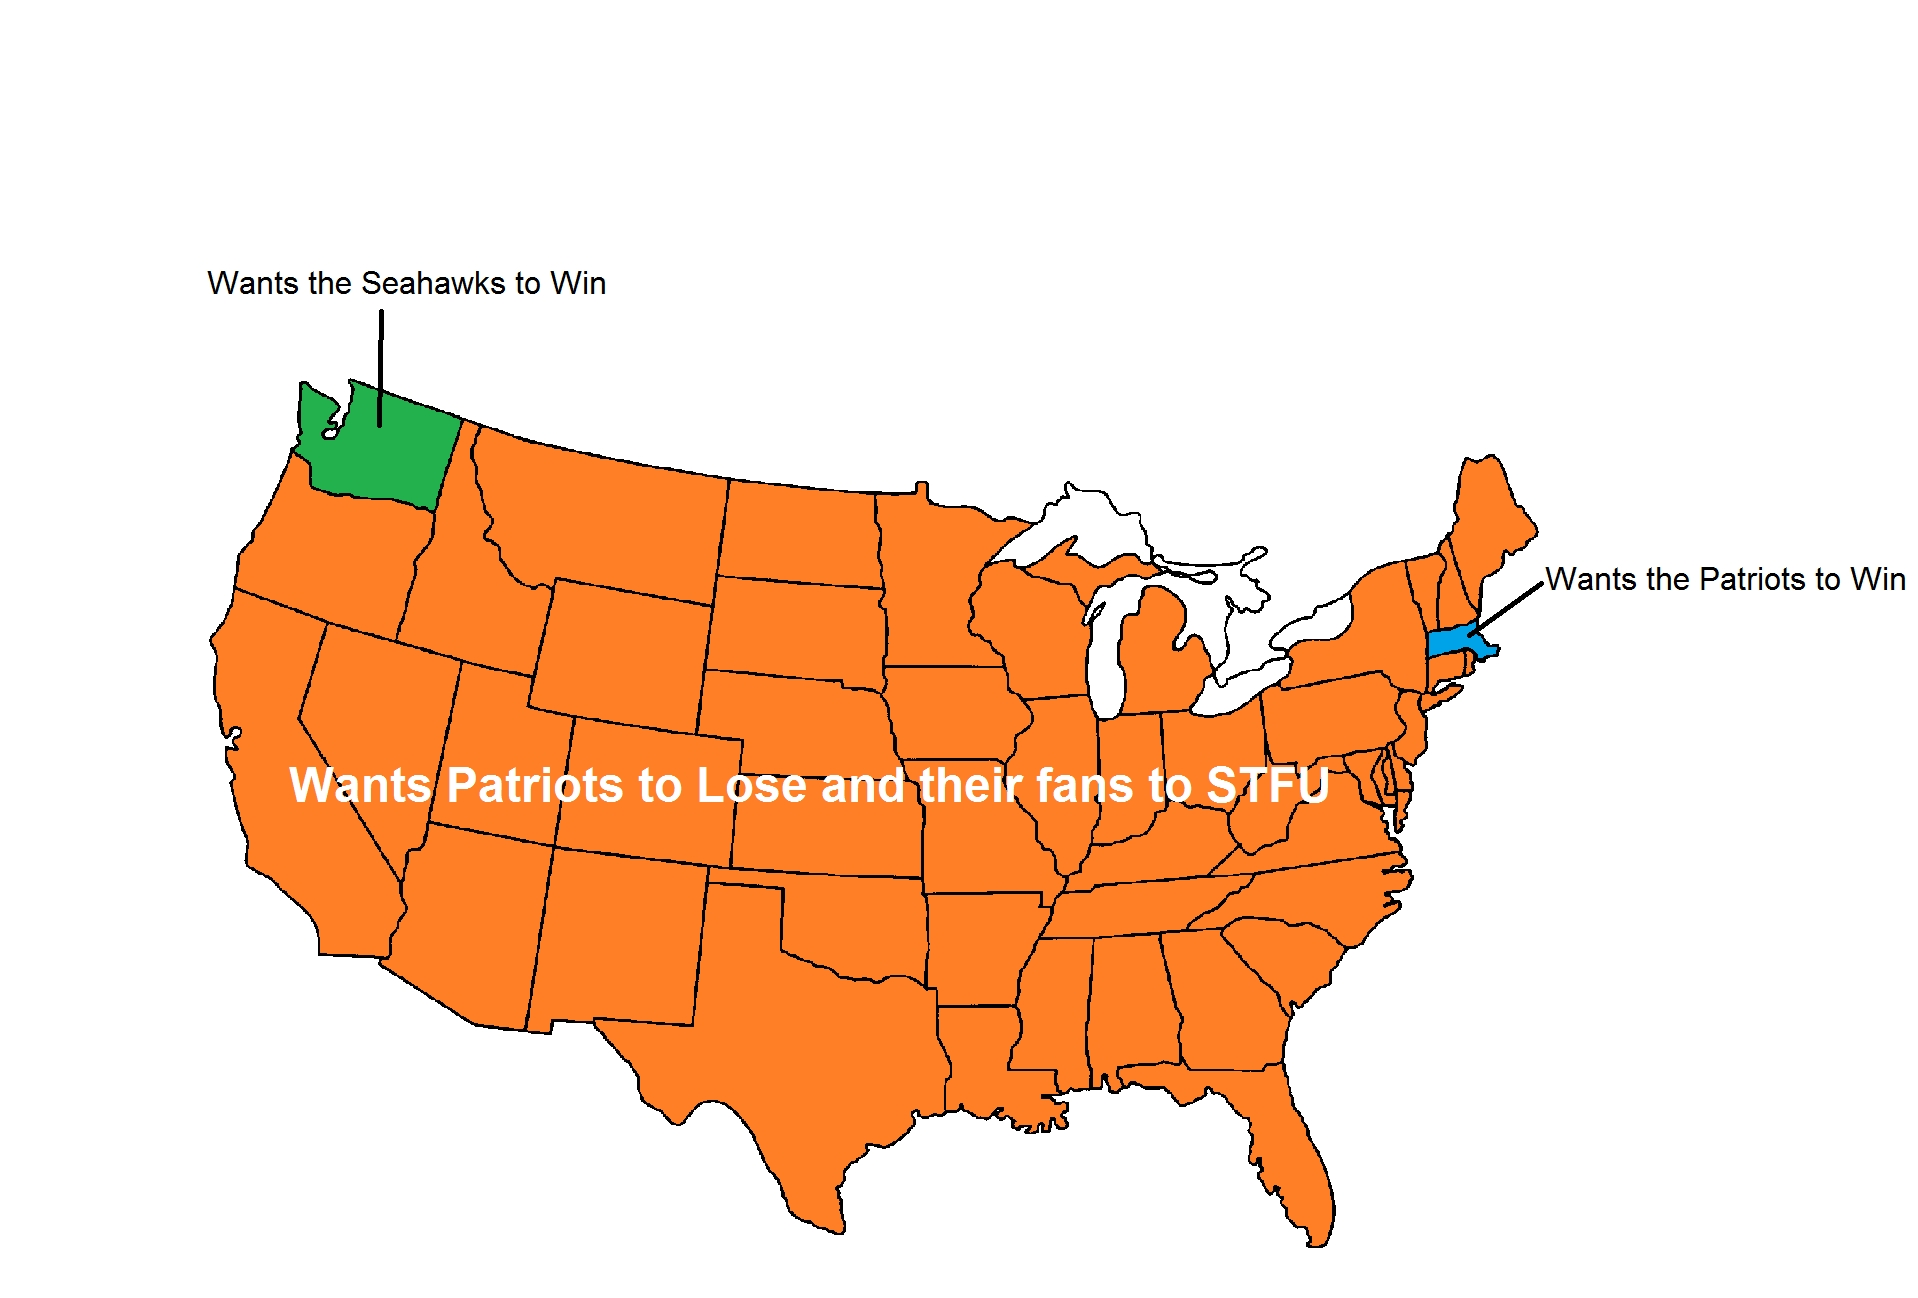 My Take On The Superbowl - Imgur inside Map Of Patriots Fans For Super Bowl